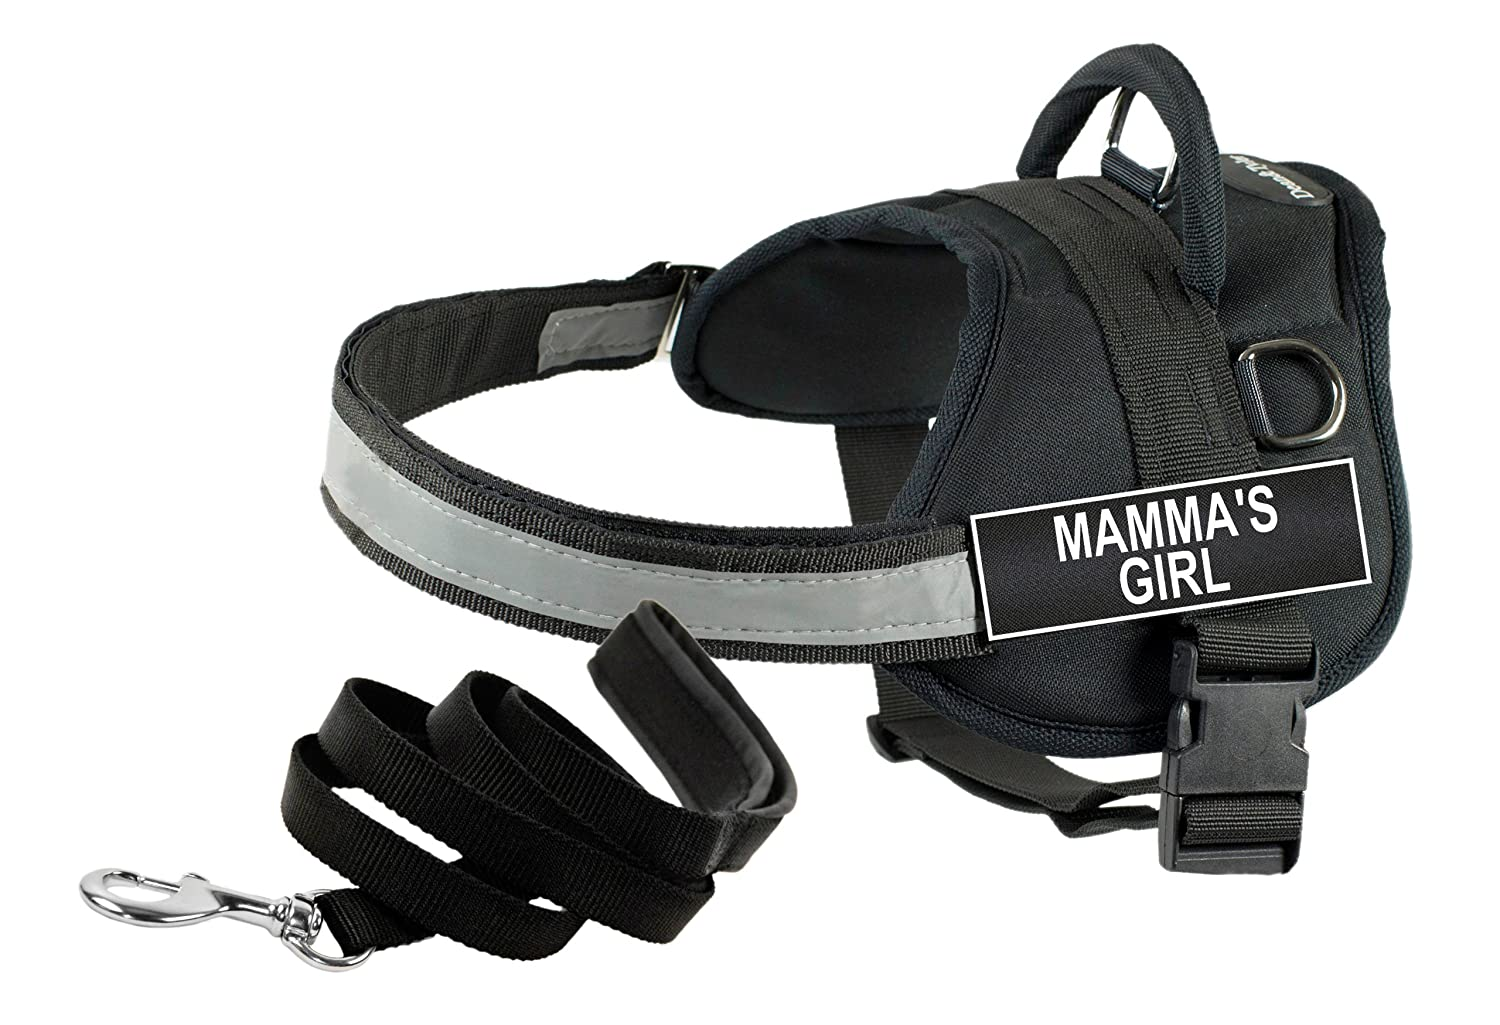 Dean & Tyler's DT Works MAMMA'S GIRL Harness, Small, with 6 ft Padded Puppy Leash.